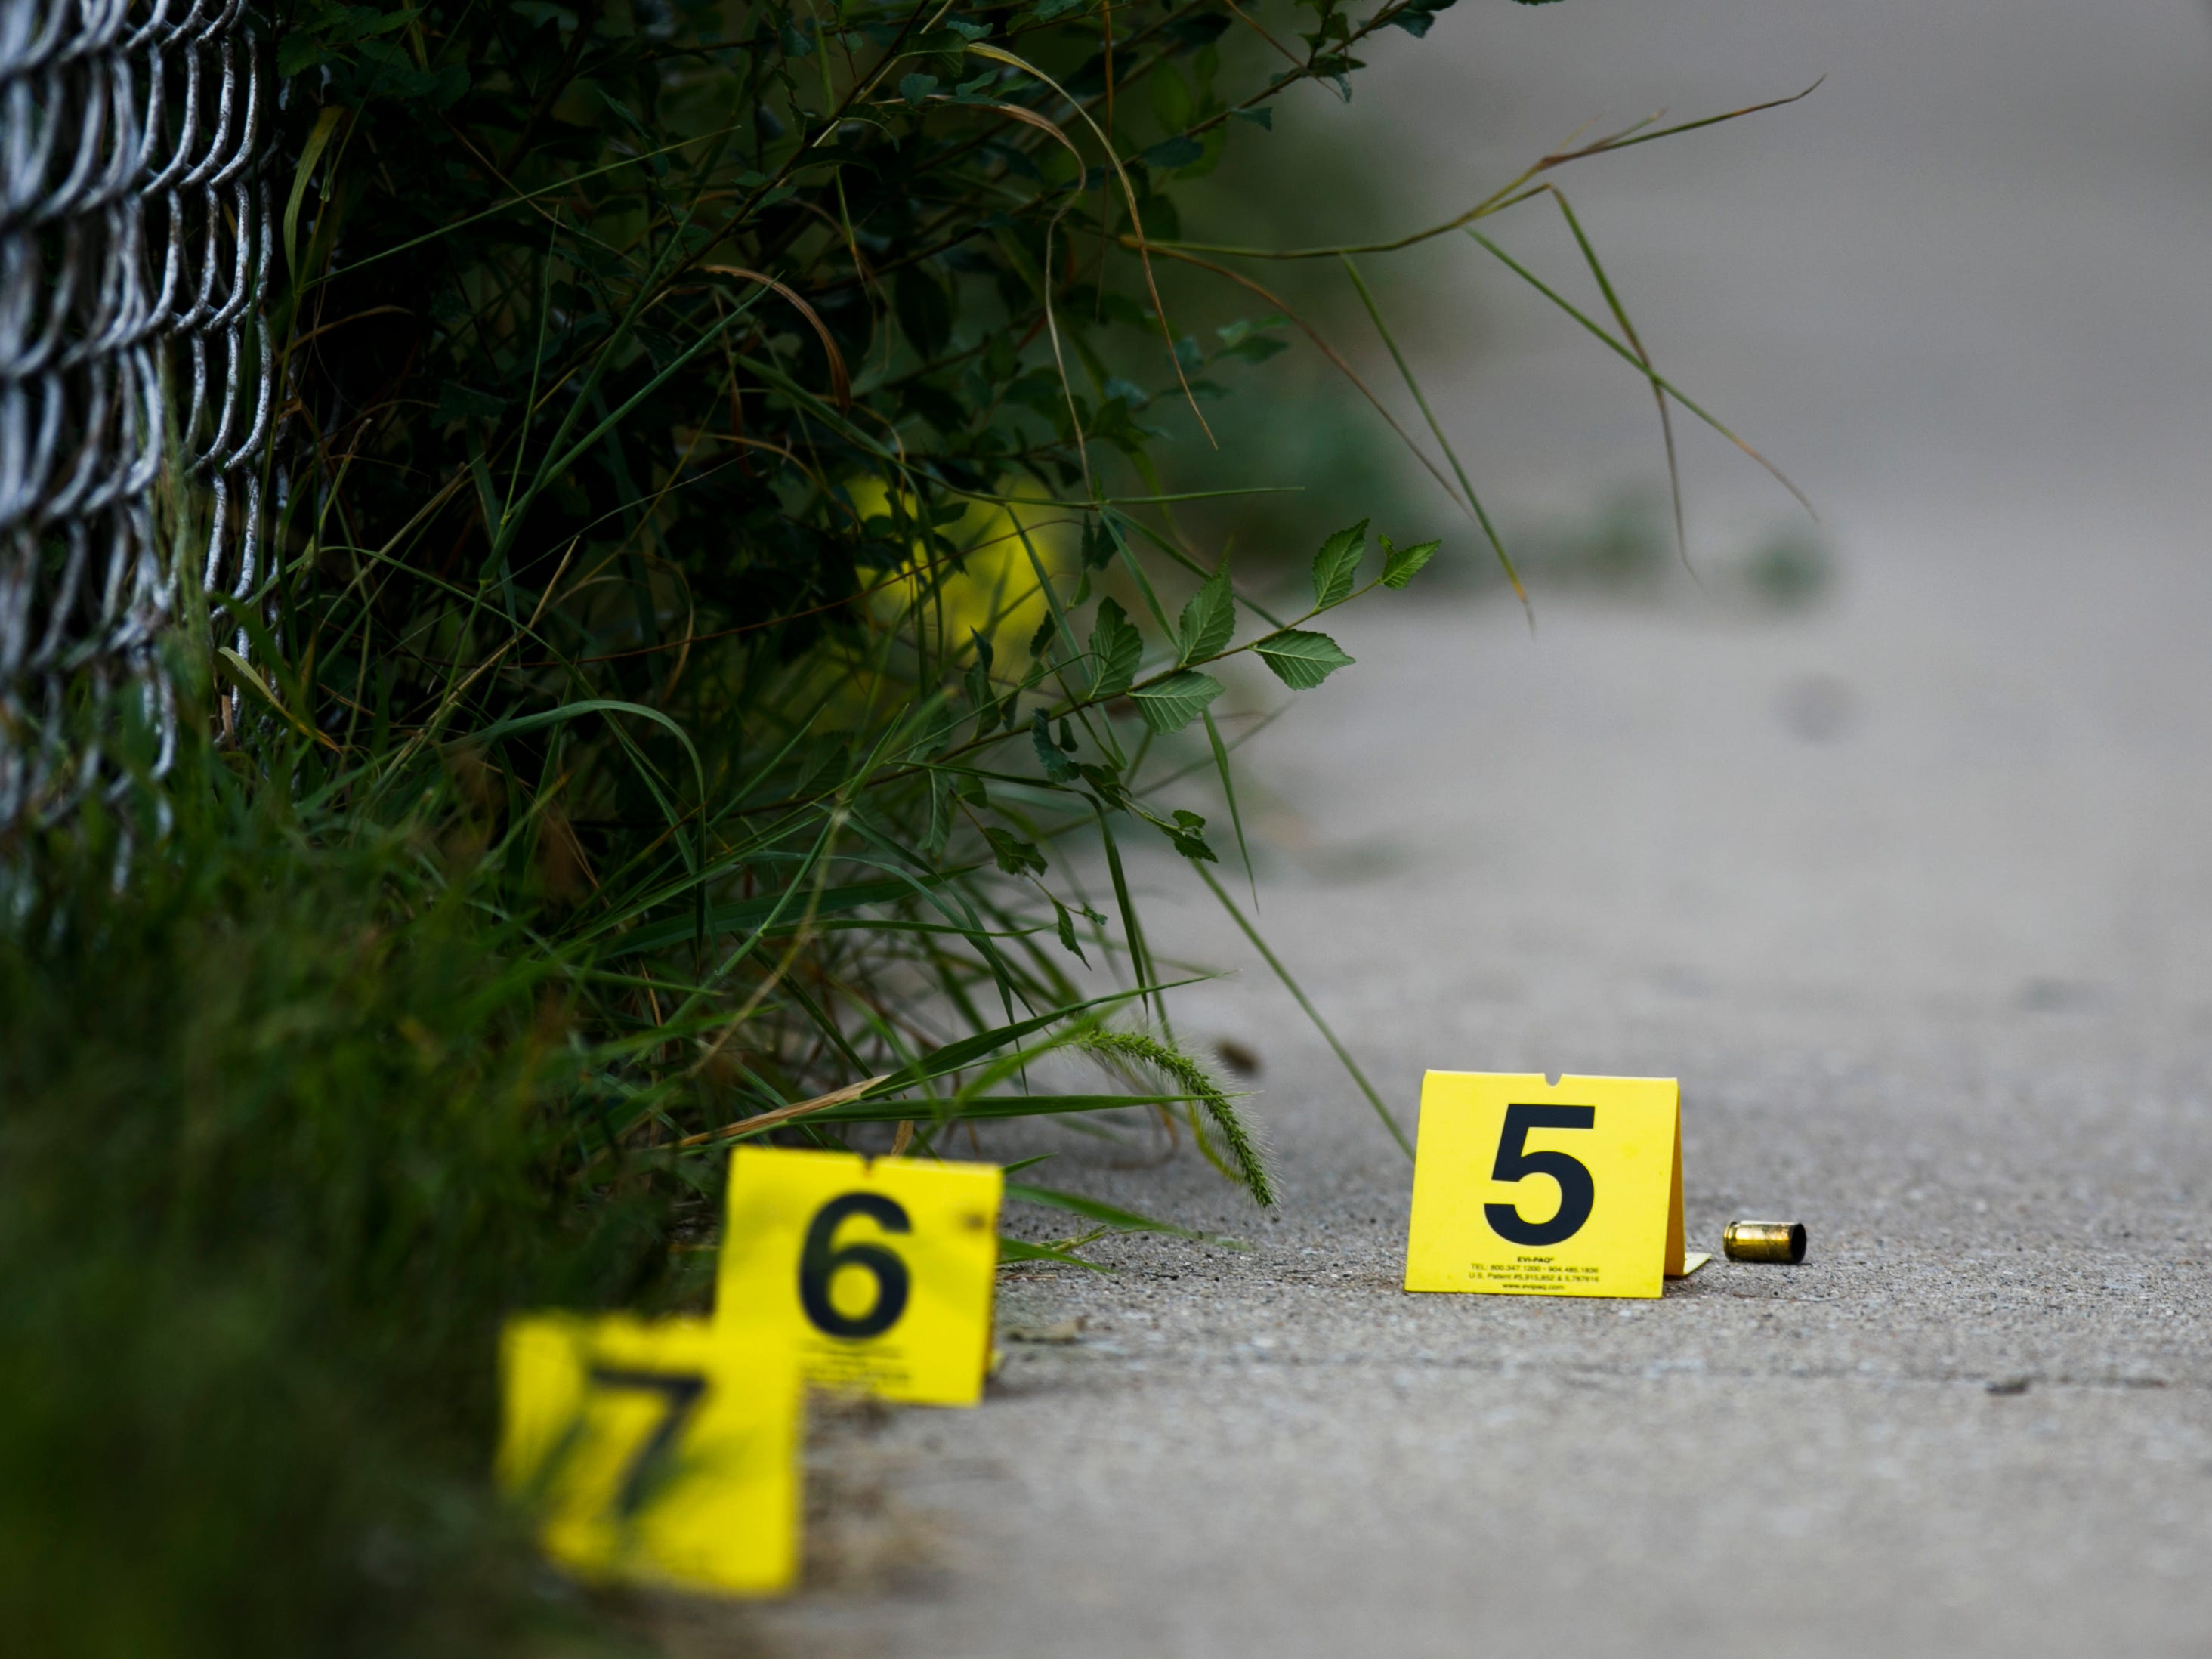 In this Sunday, Aug. 5, 2018 photo, evidence markers sit on the ground at the scene where a boy was killed after being shot in the abdomen while riding his bike in Chicago. Police Superintendent Eddie Johnson plans to discuss the weekend violence during a Monday news conference.